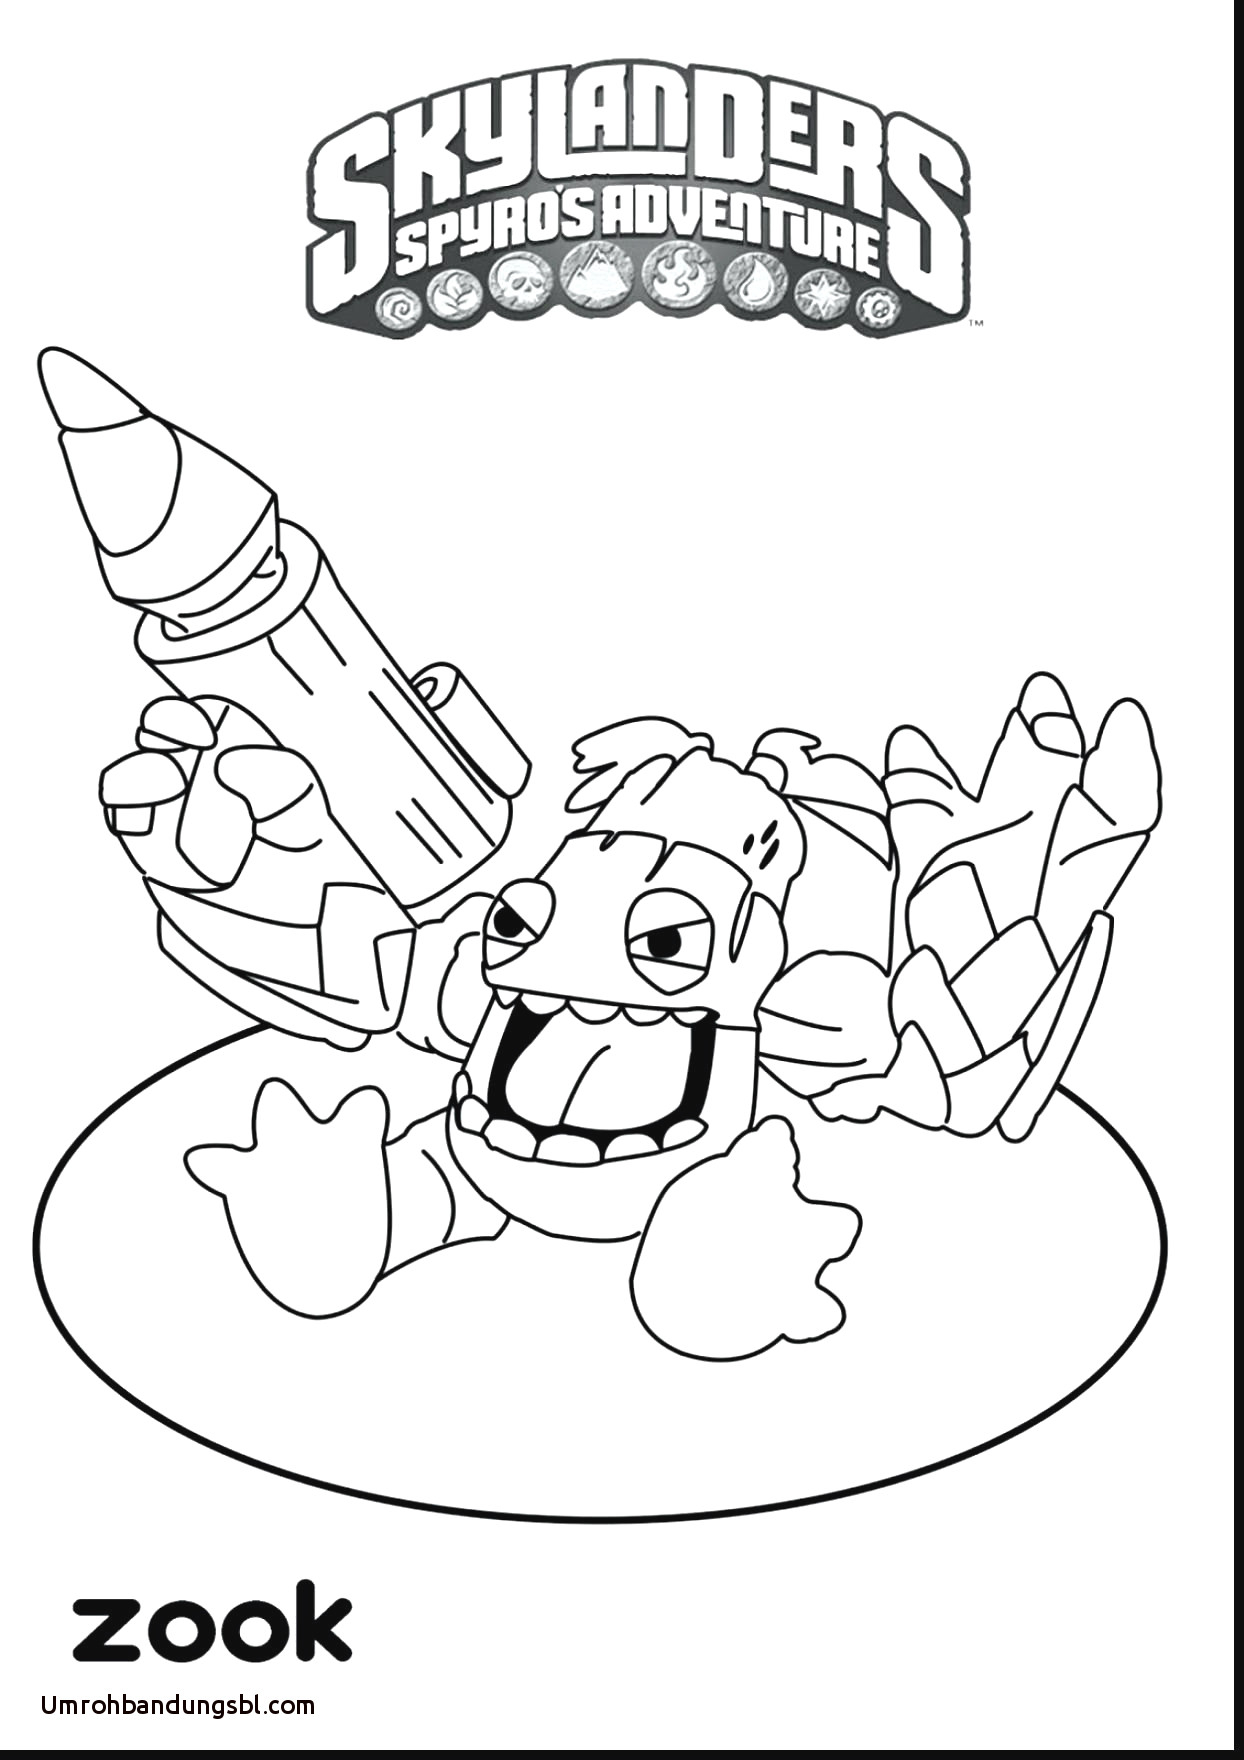 anime coloring pages online Download-Harvest Coloring Pages Luxury Fox Coloring Pages Elegant Page Coloring 0d Modokom – Fun Time 1-c